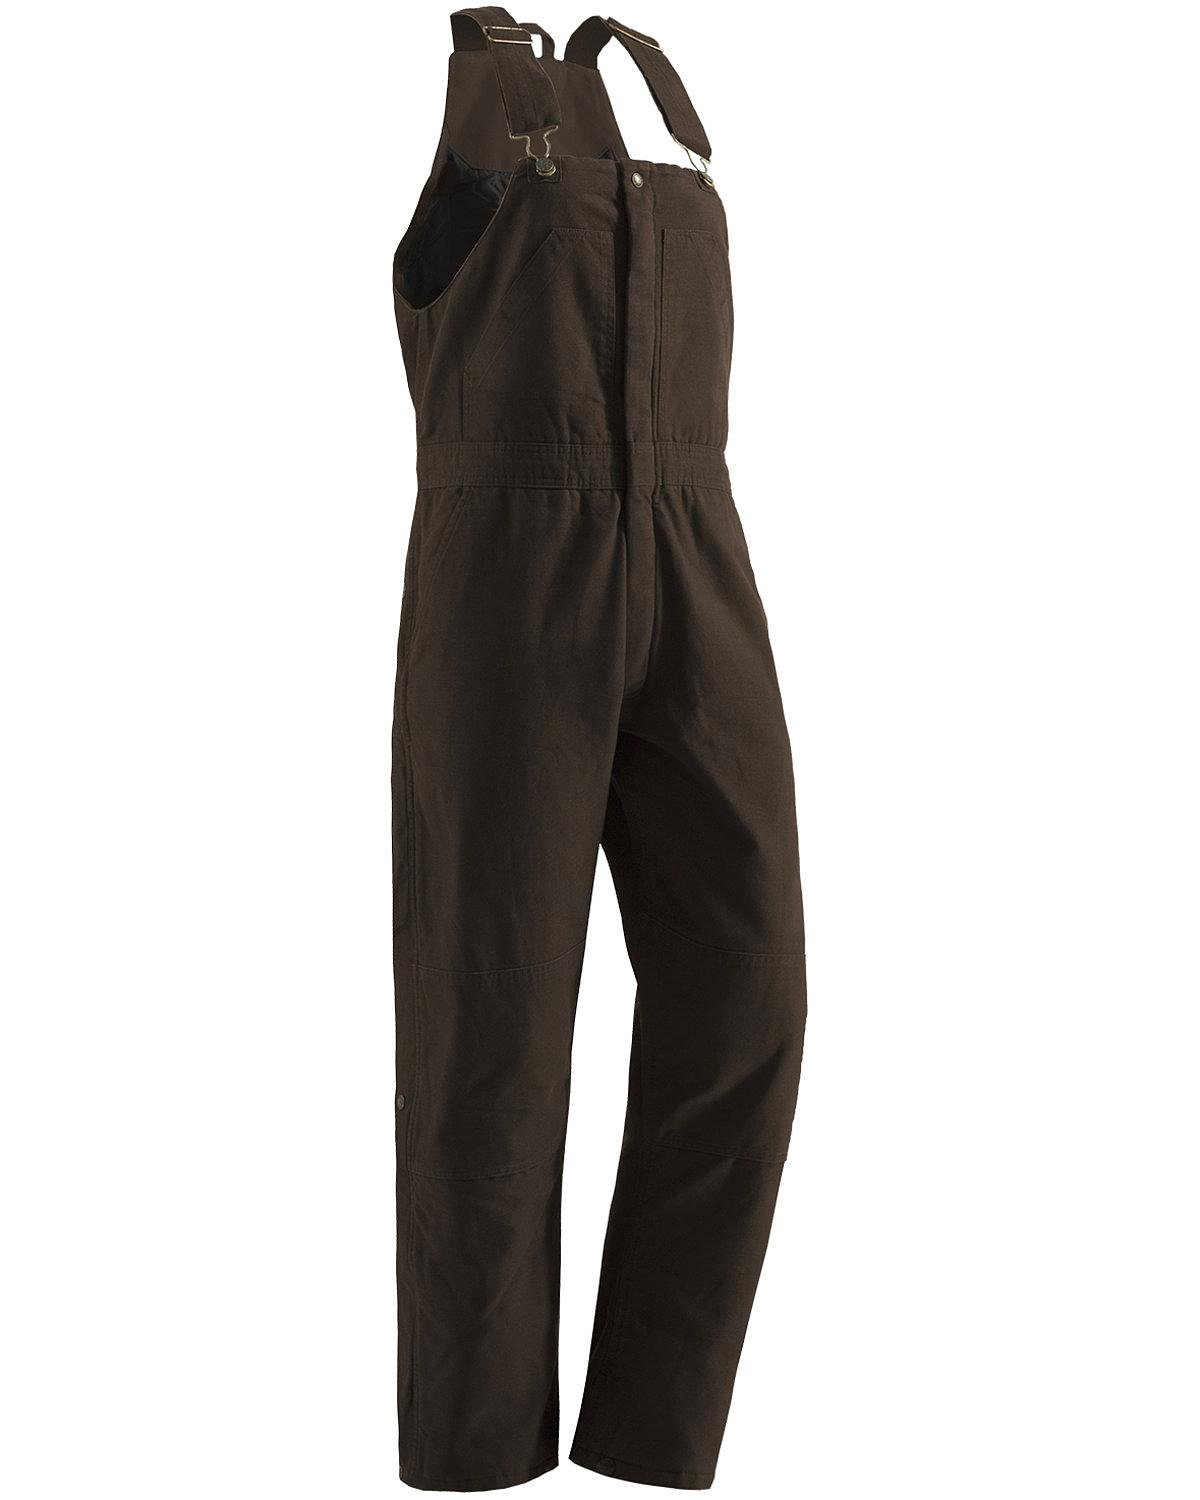 Berne Women's Washed Insulated Bib Overalls Tall Dark Brown MT